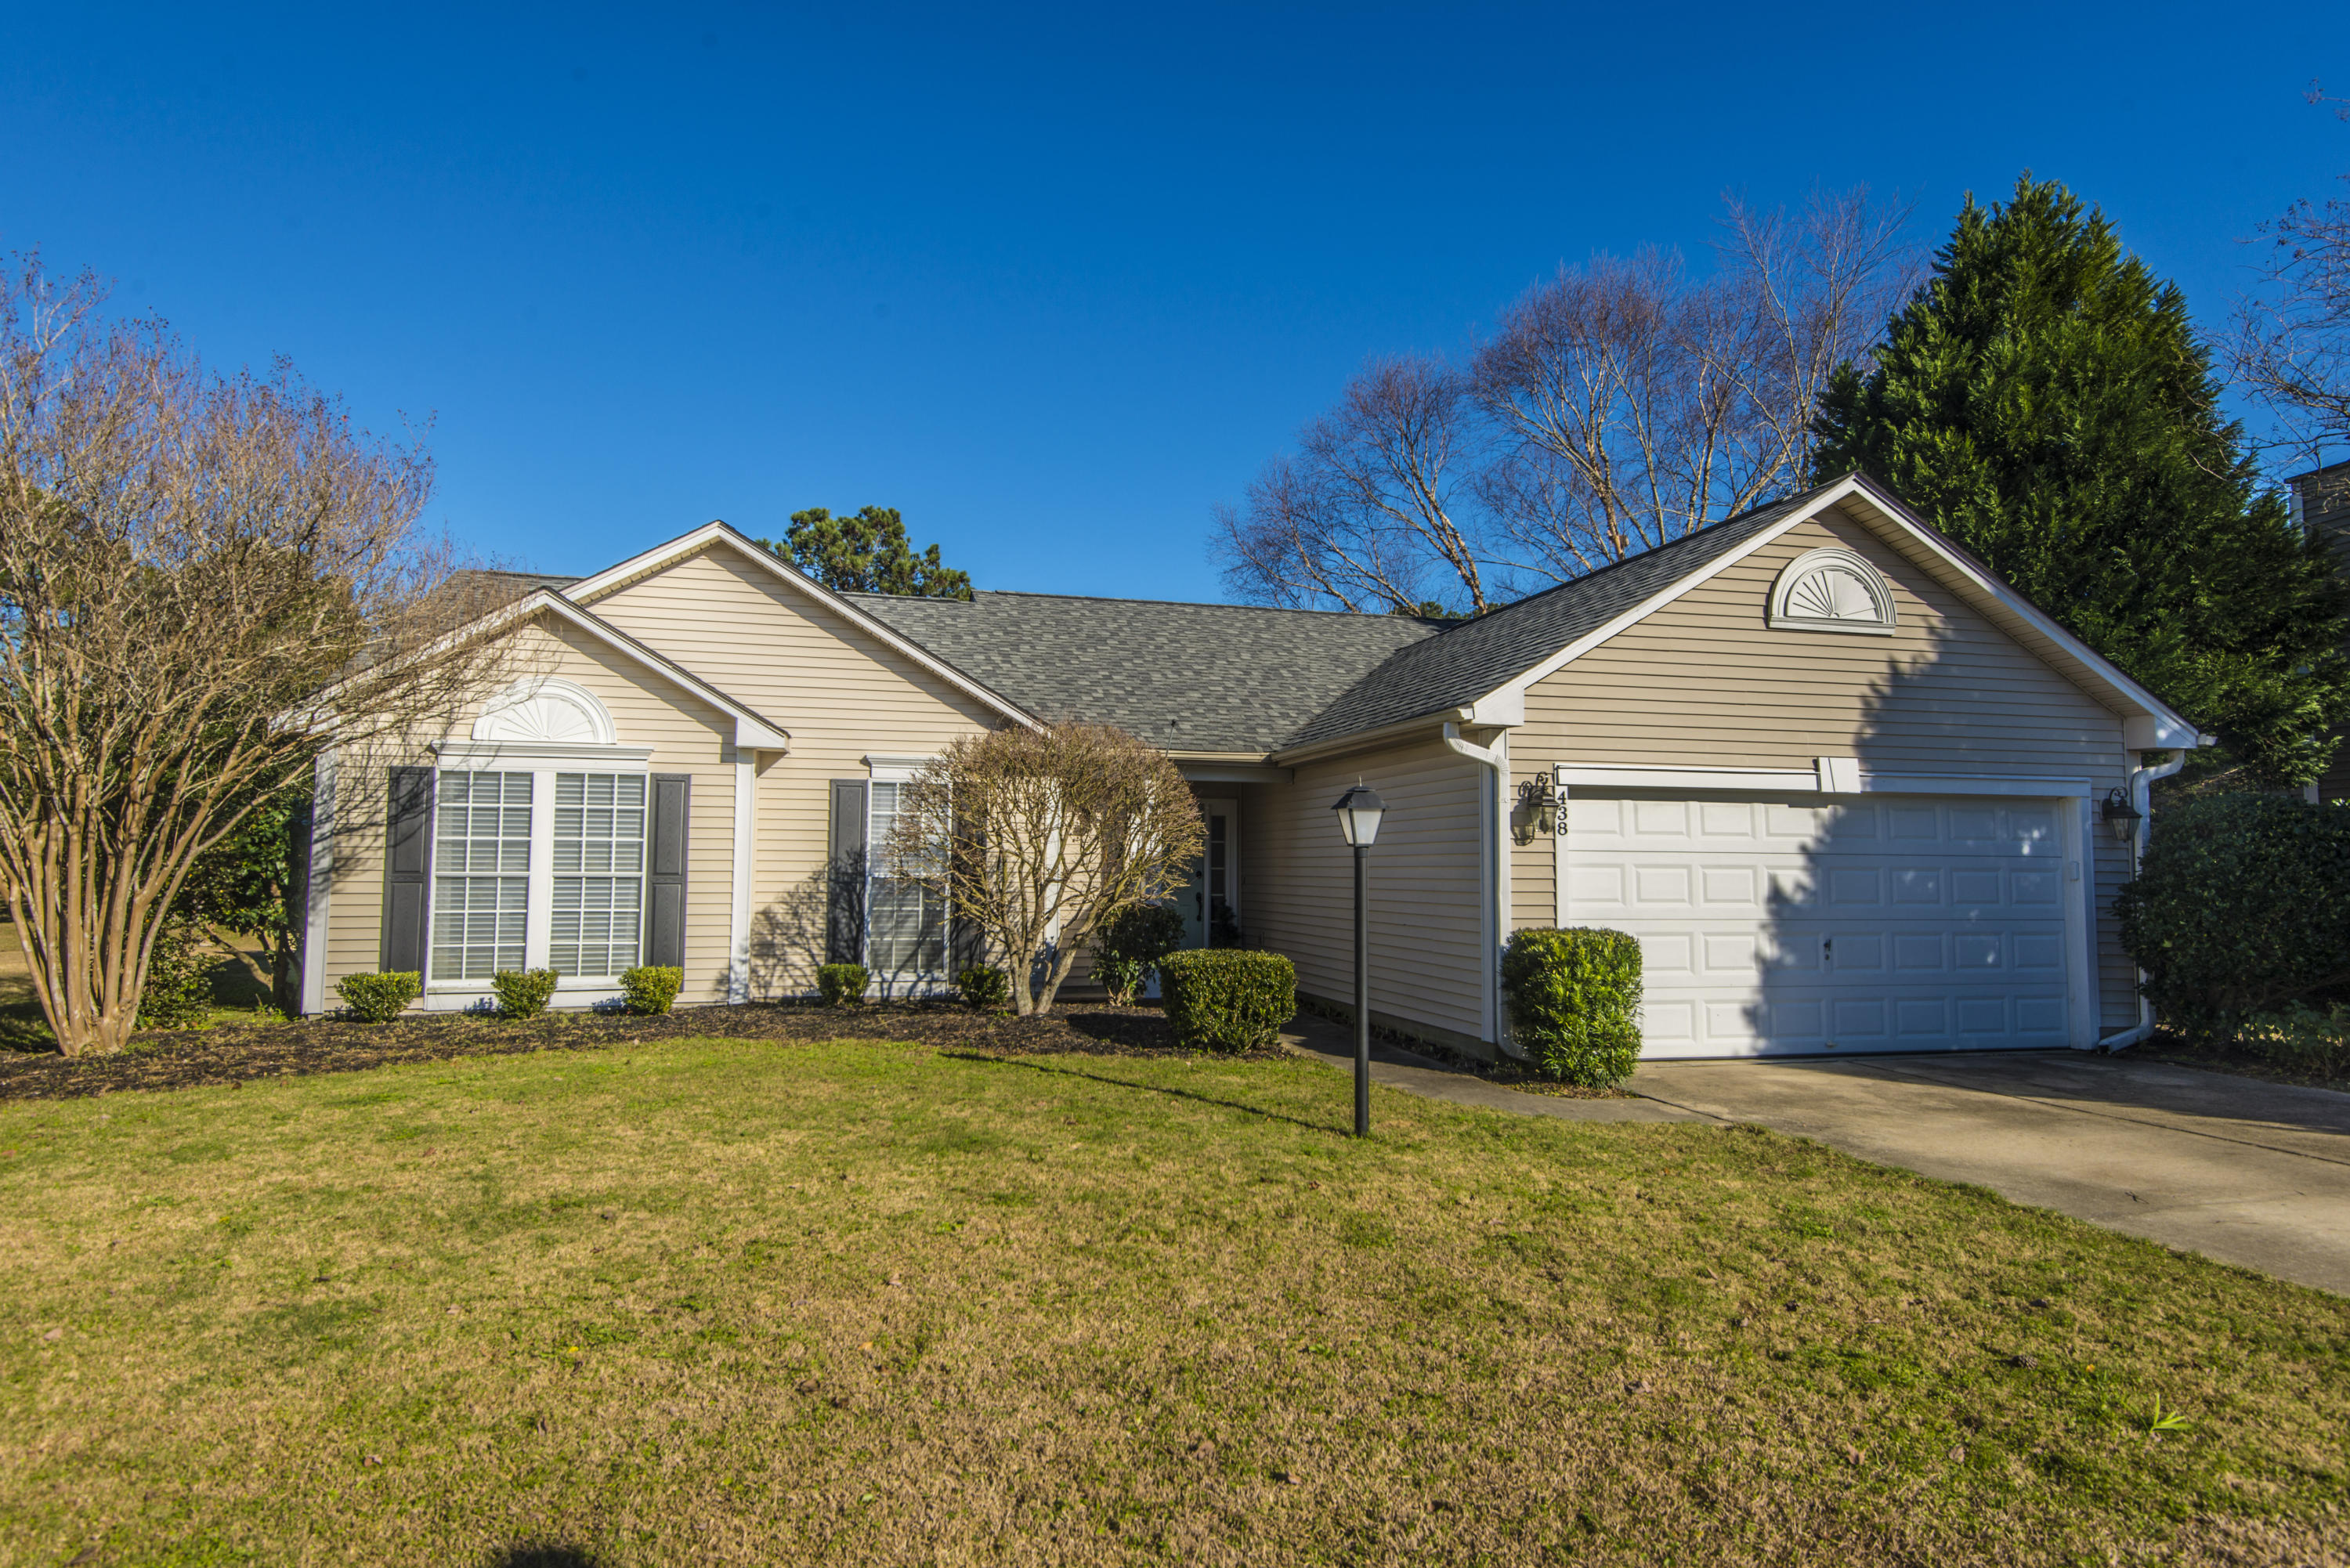 Belle Hall Homes For Sale - 438 Piazza, Mount Pleasant, SC - 2